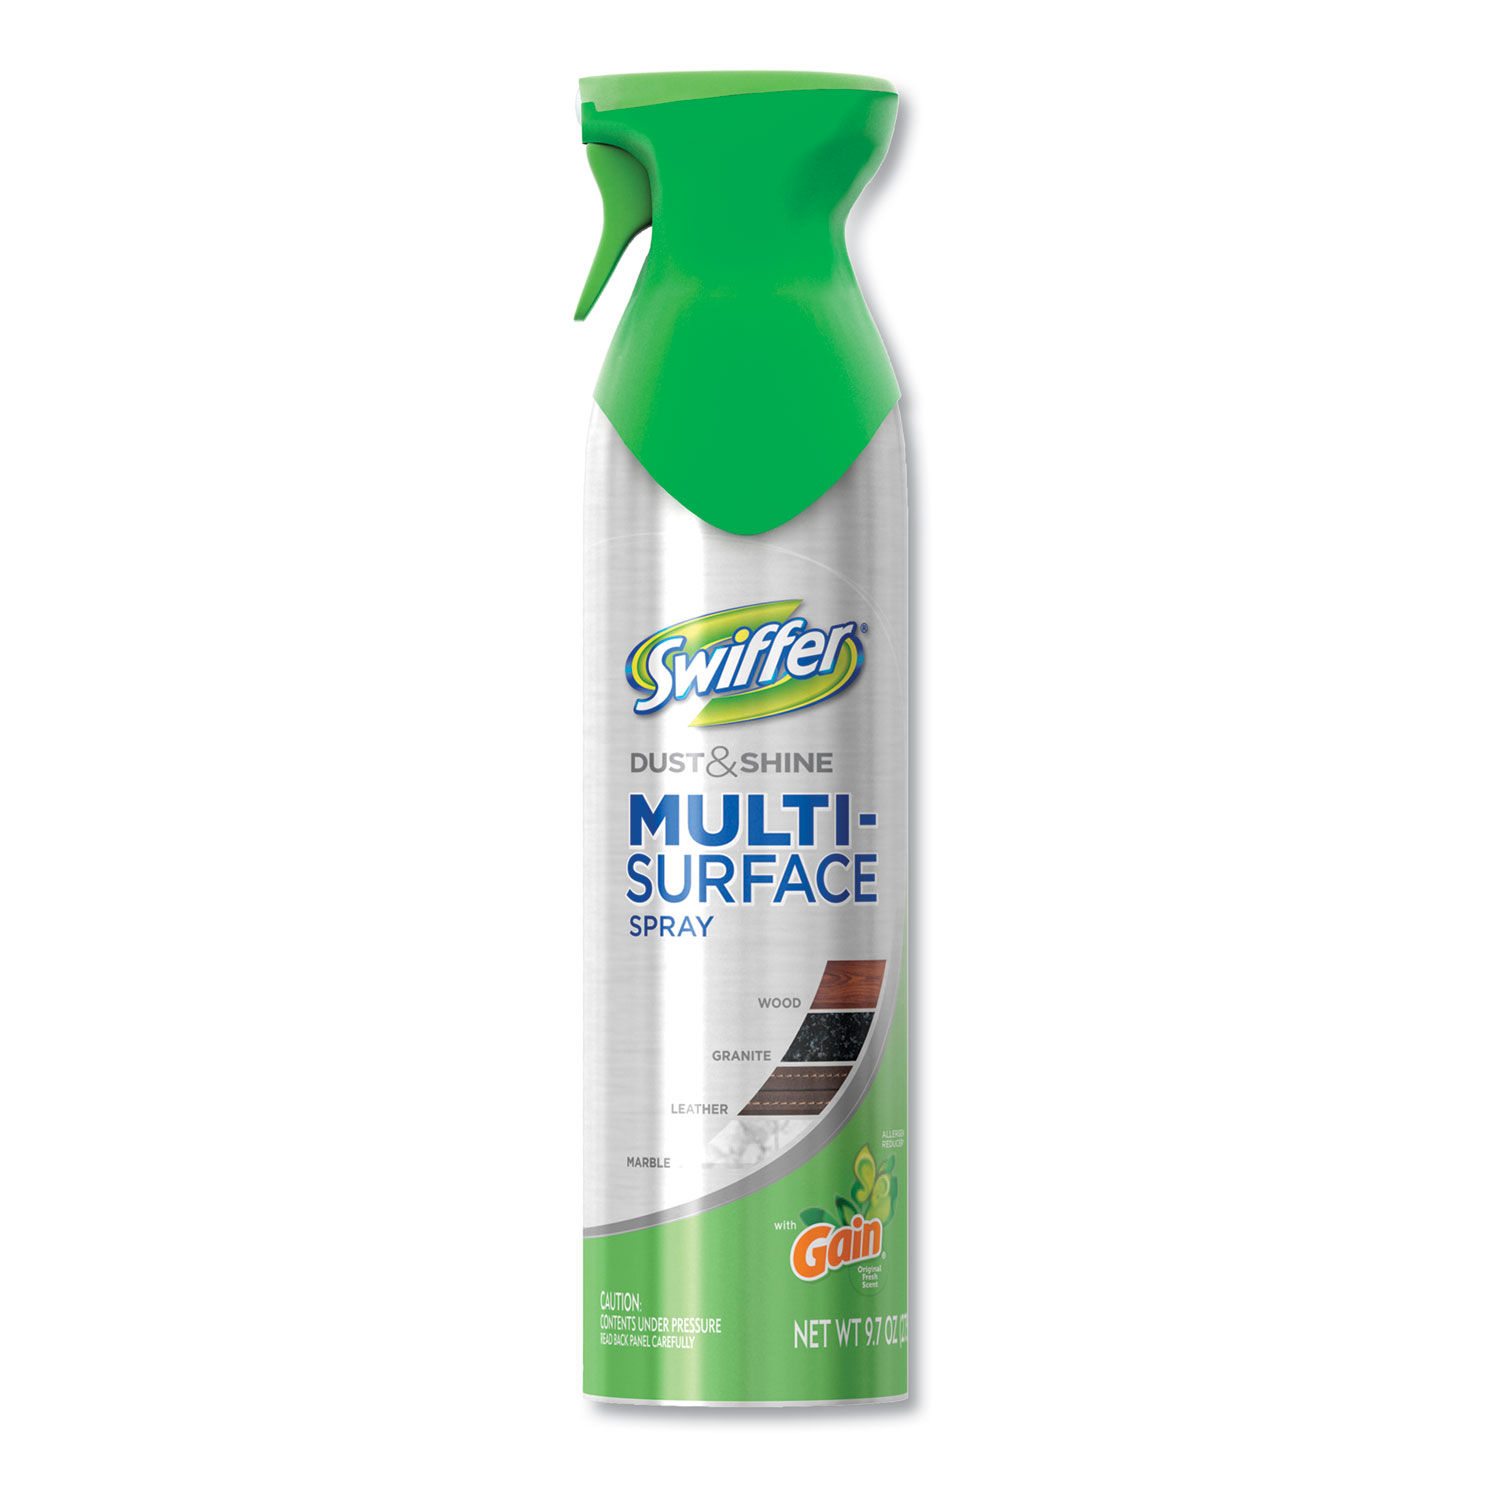 Dust And Shine Multi Surface Spray By Swiffer 174 Pgc83619